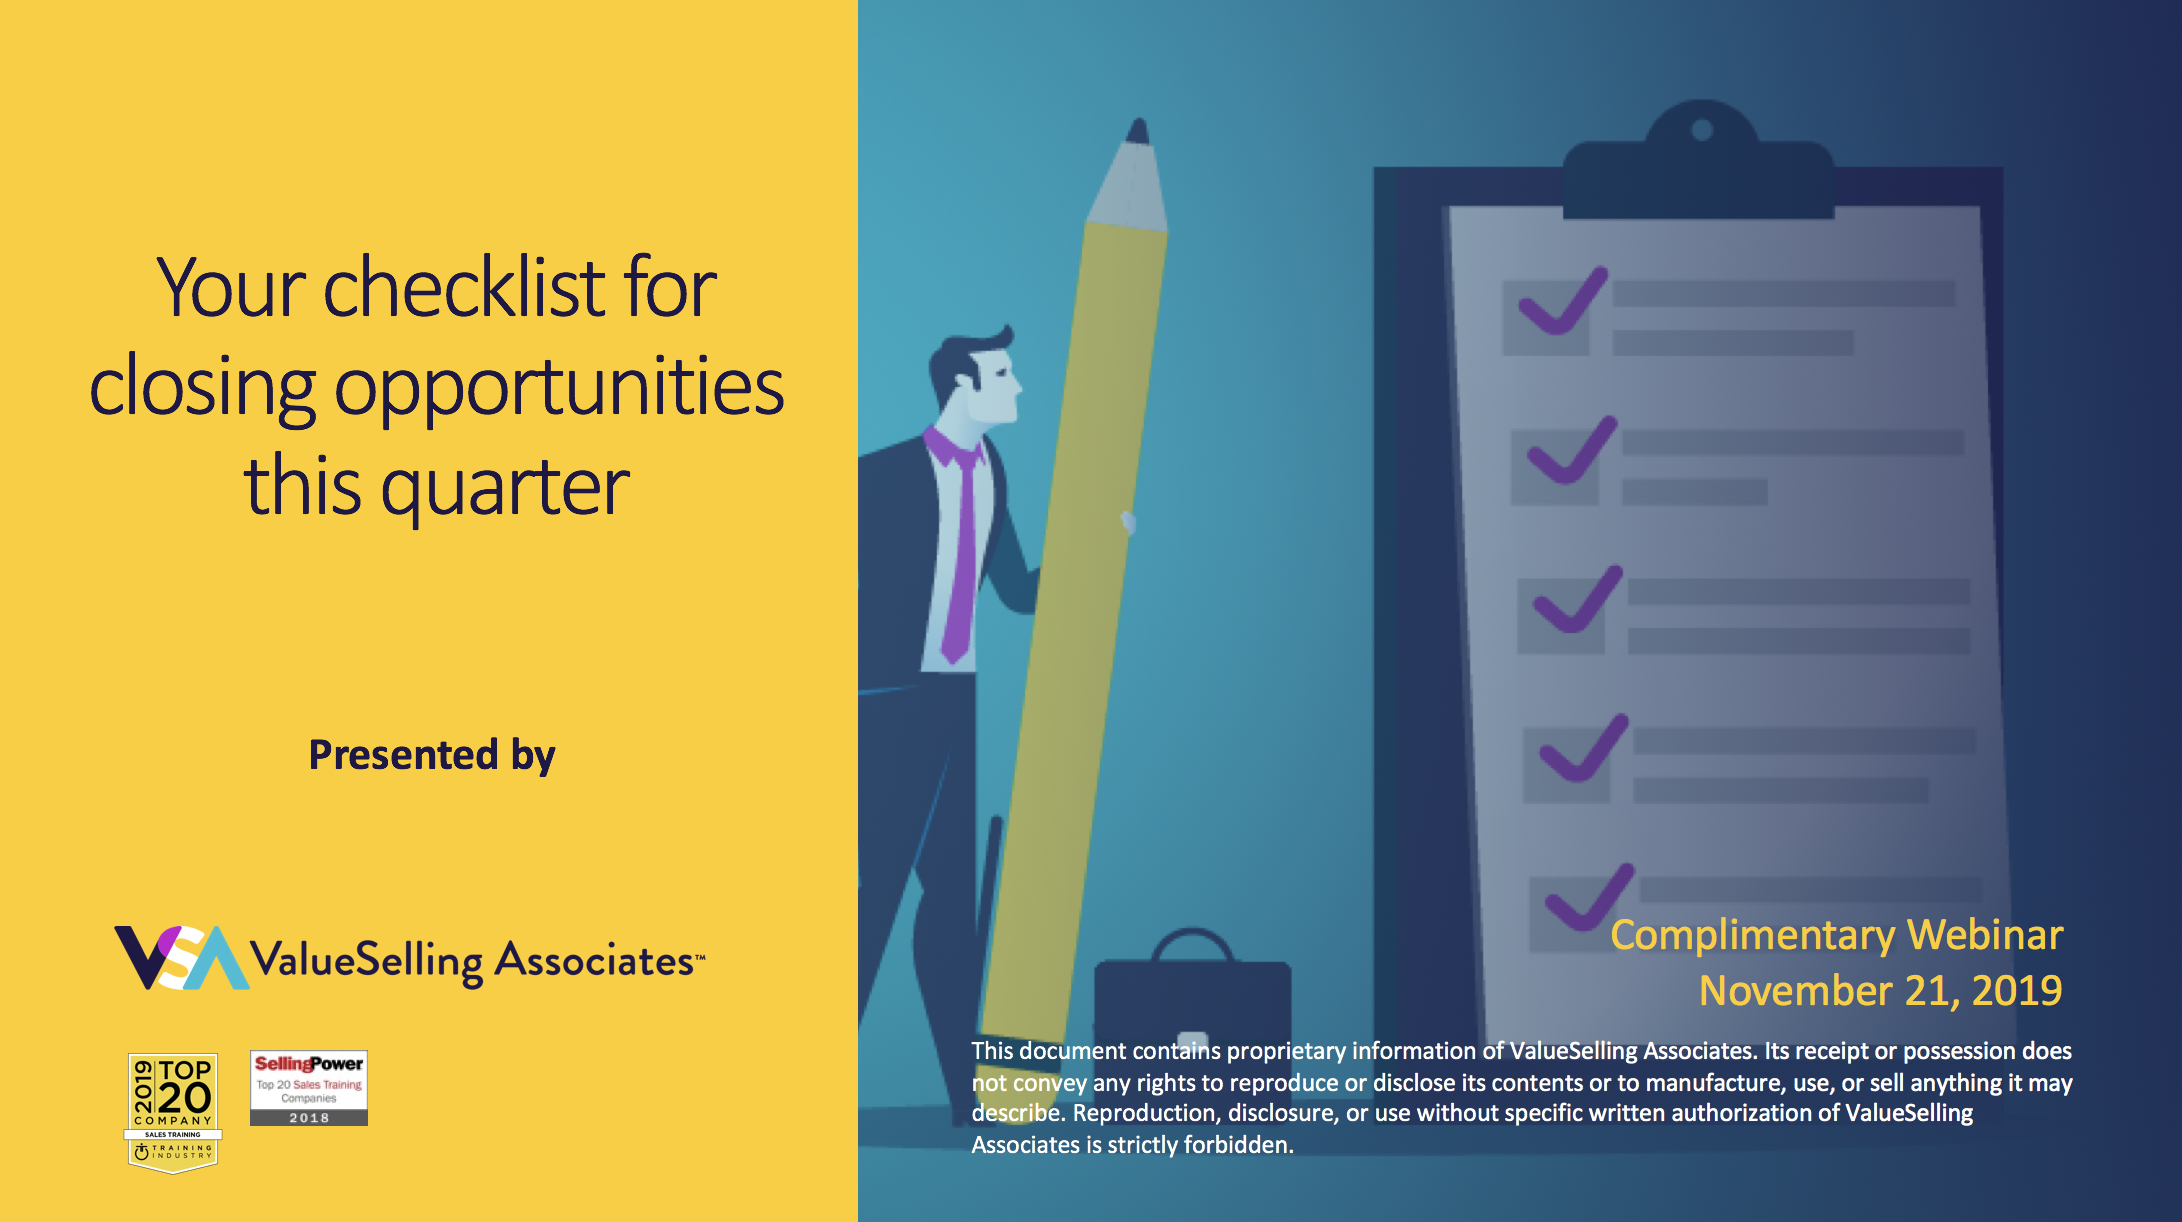 Your Checklist for Closing Opportunities this Quarter